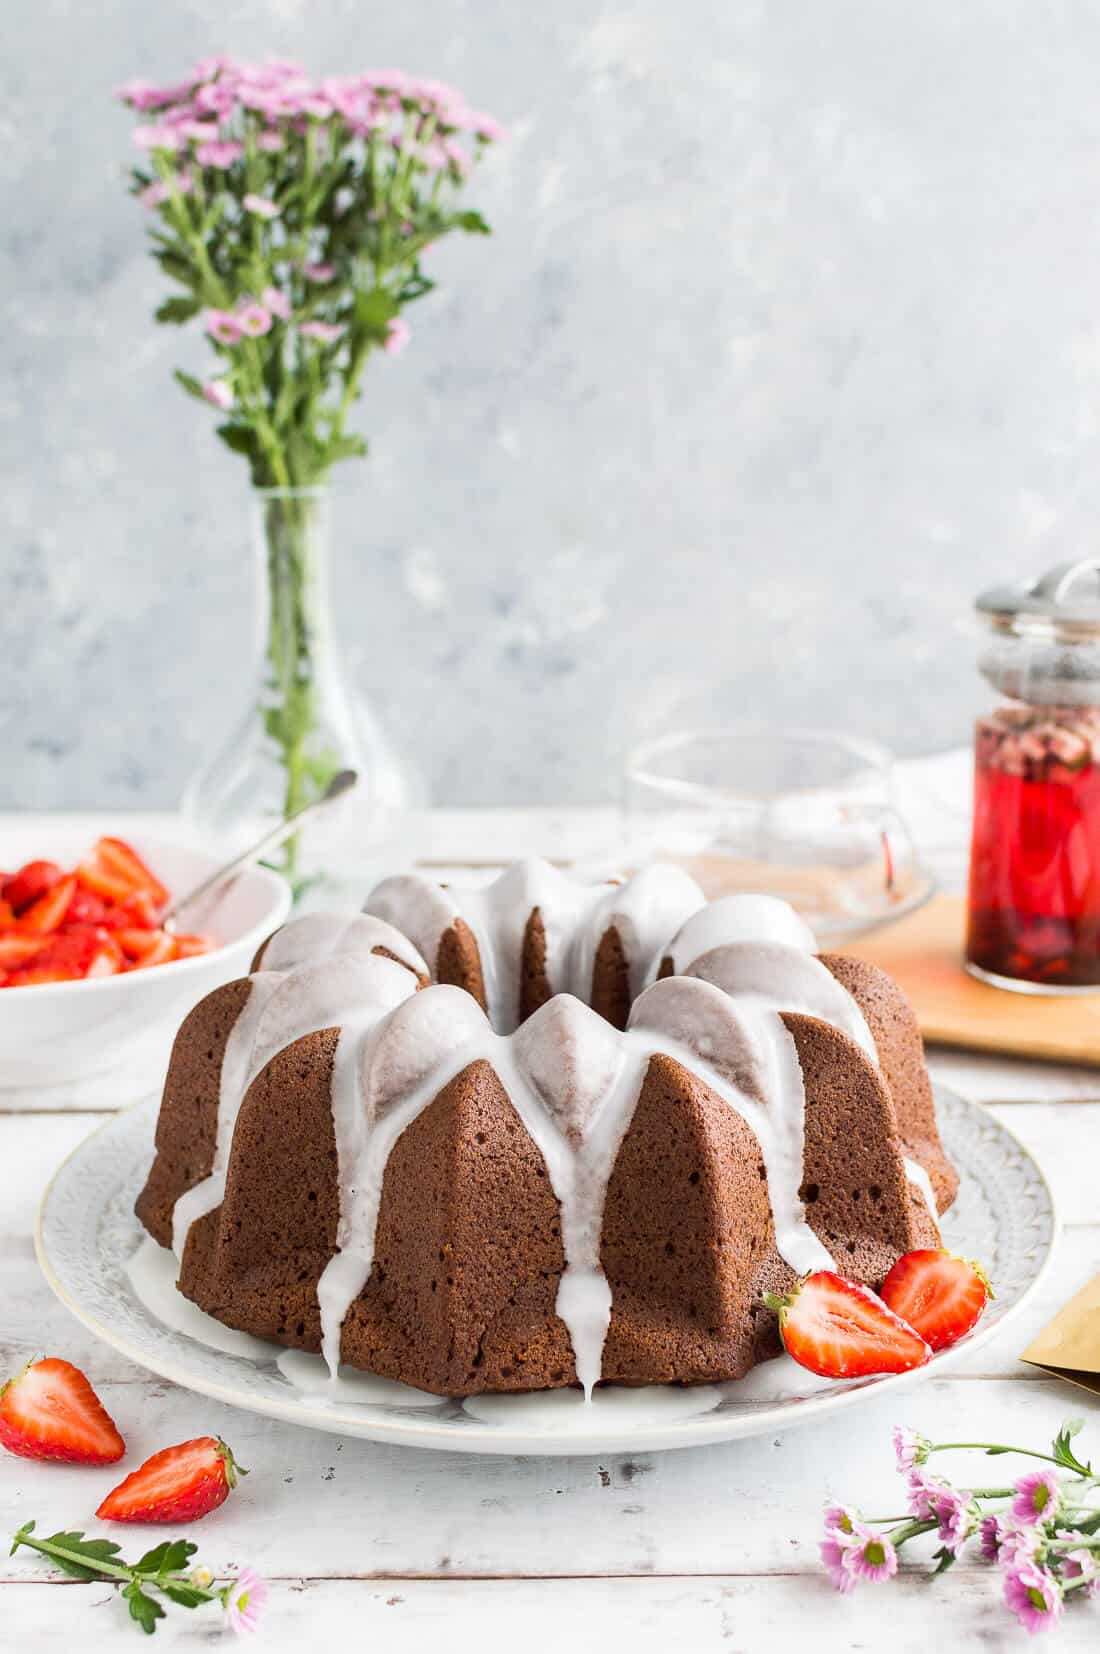 Vegan gingerbread bundt cake with a lime glaze and macerated strawberries served with tea